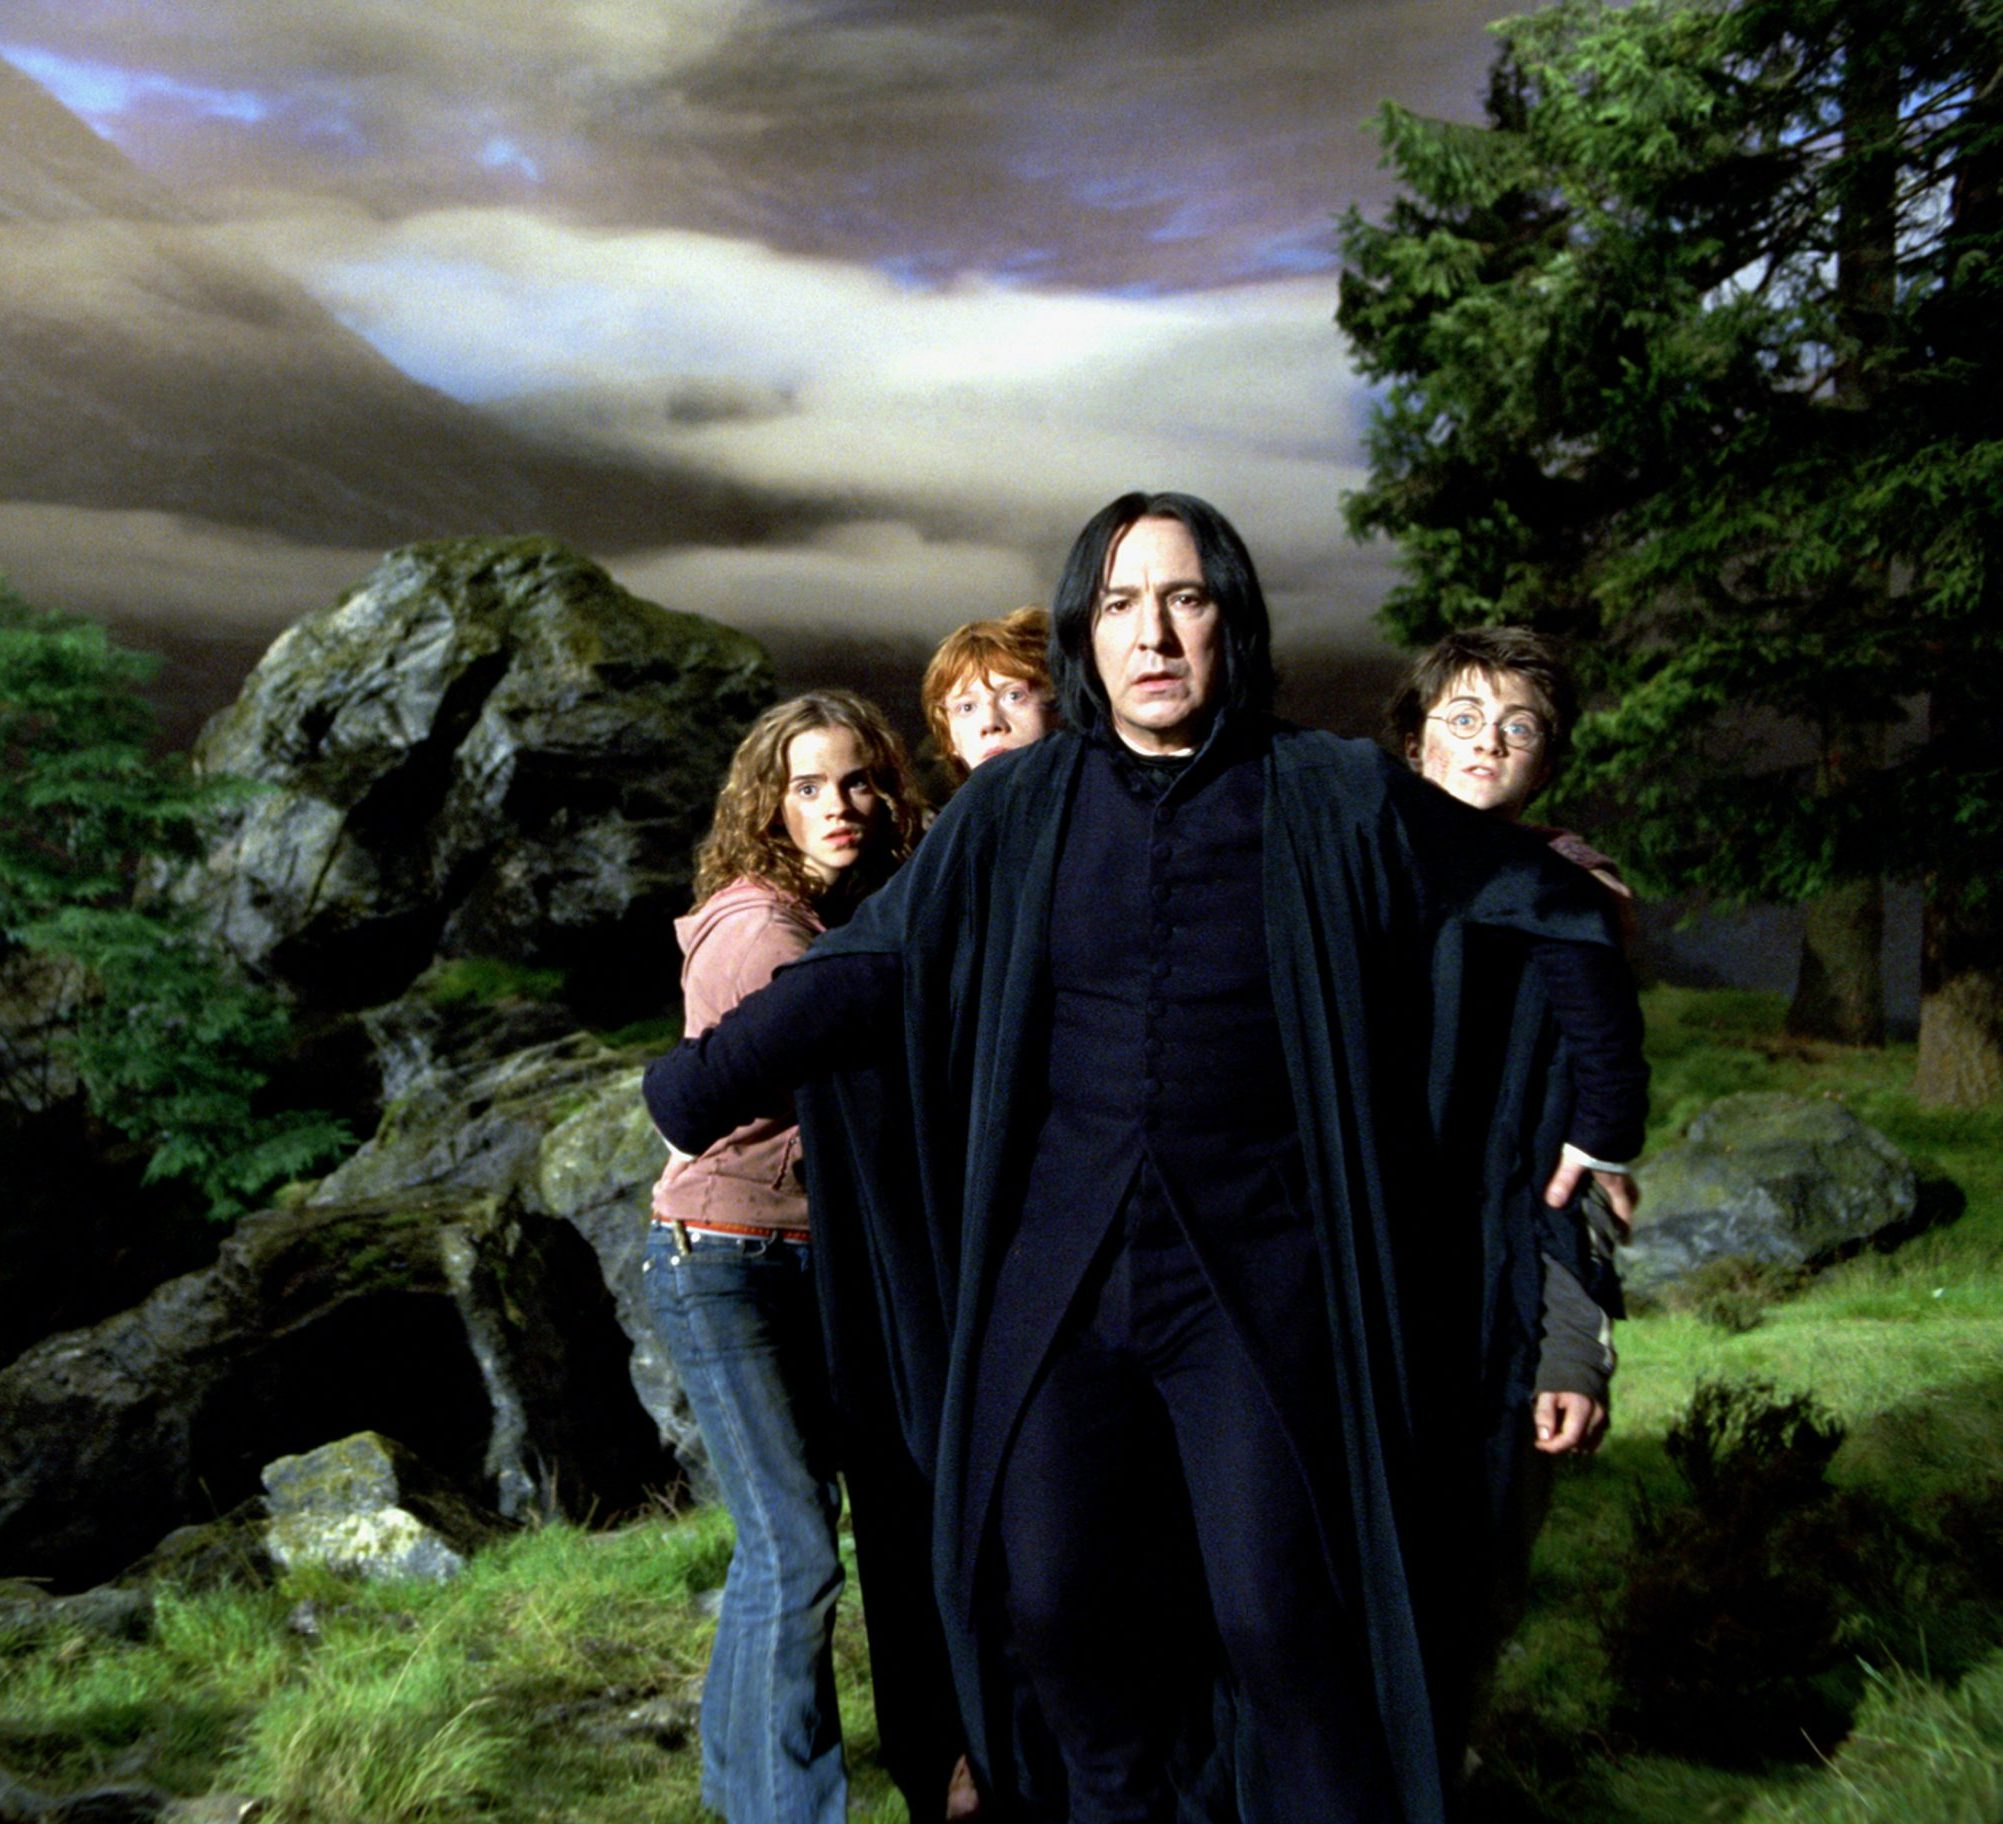 WB F3 SnapeStandsInFrontOfHarryRonAndHermione TRL 022C UP HPE3 scaled e1615387788414 20 Things You Might Not Have Realised About The Late Alan Rickman